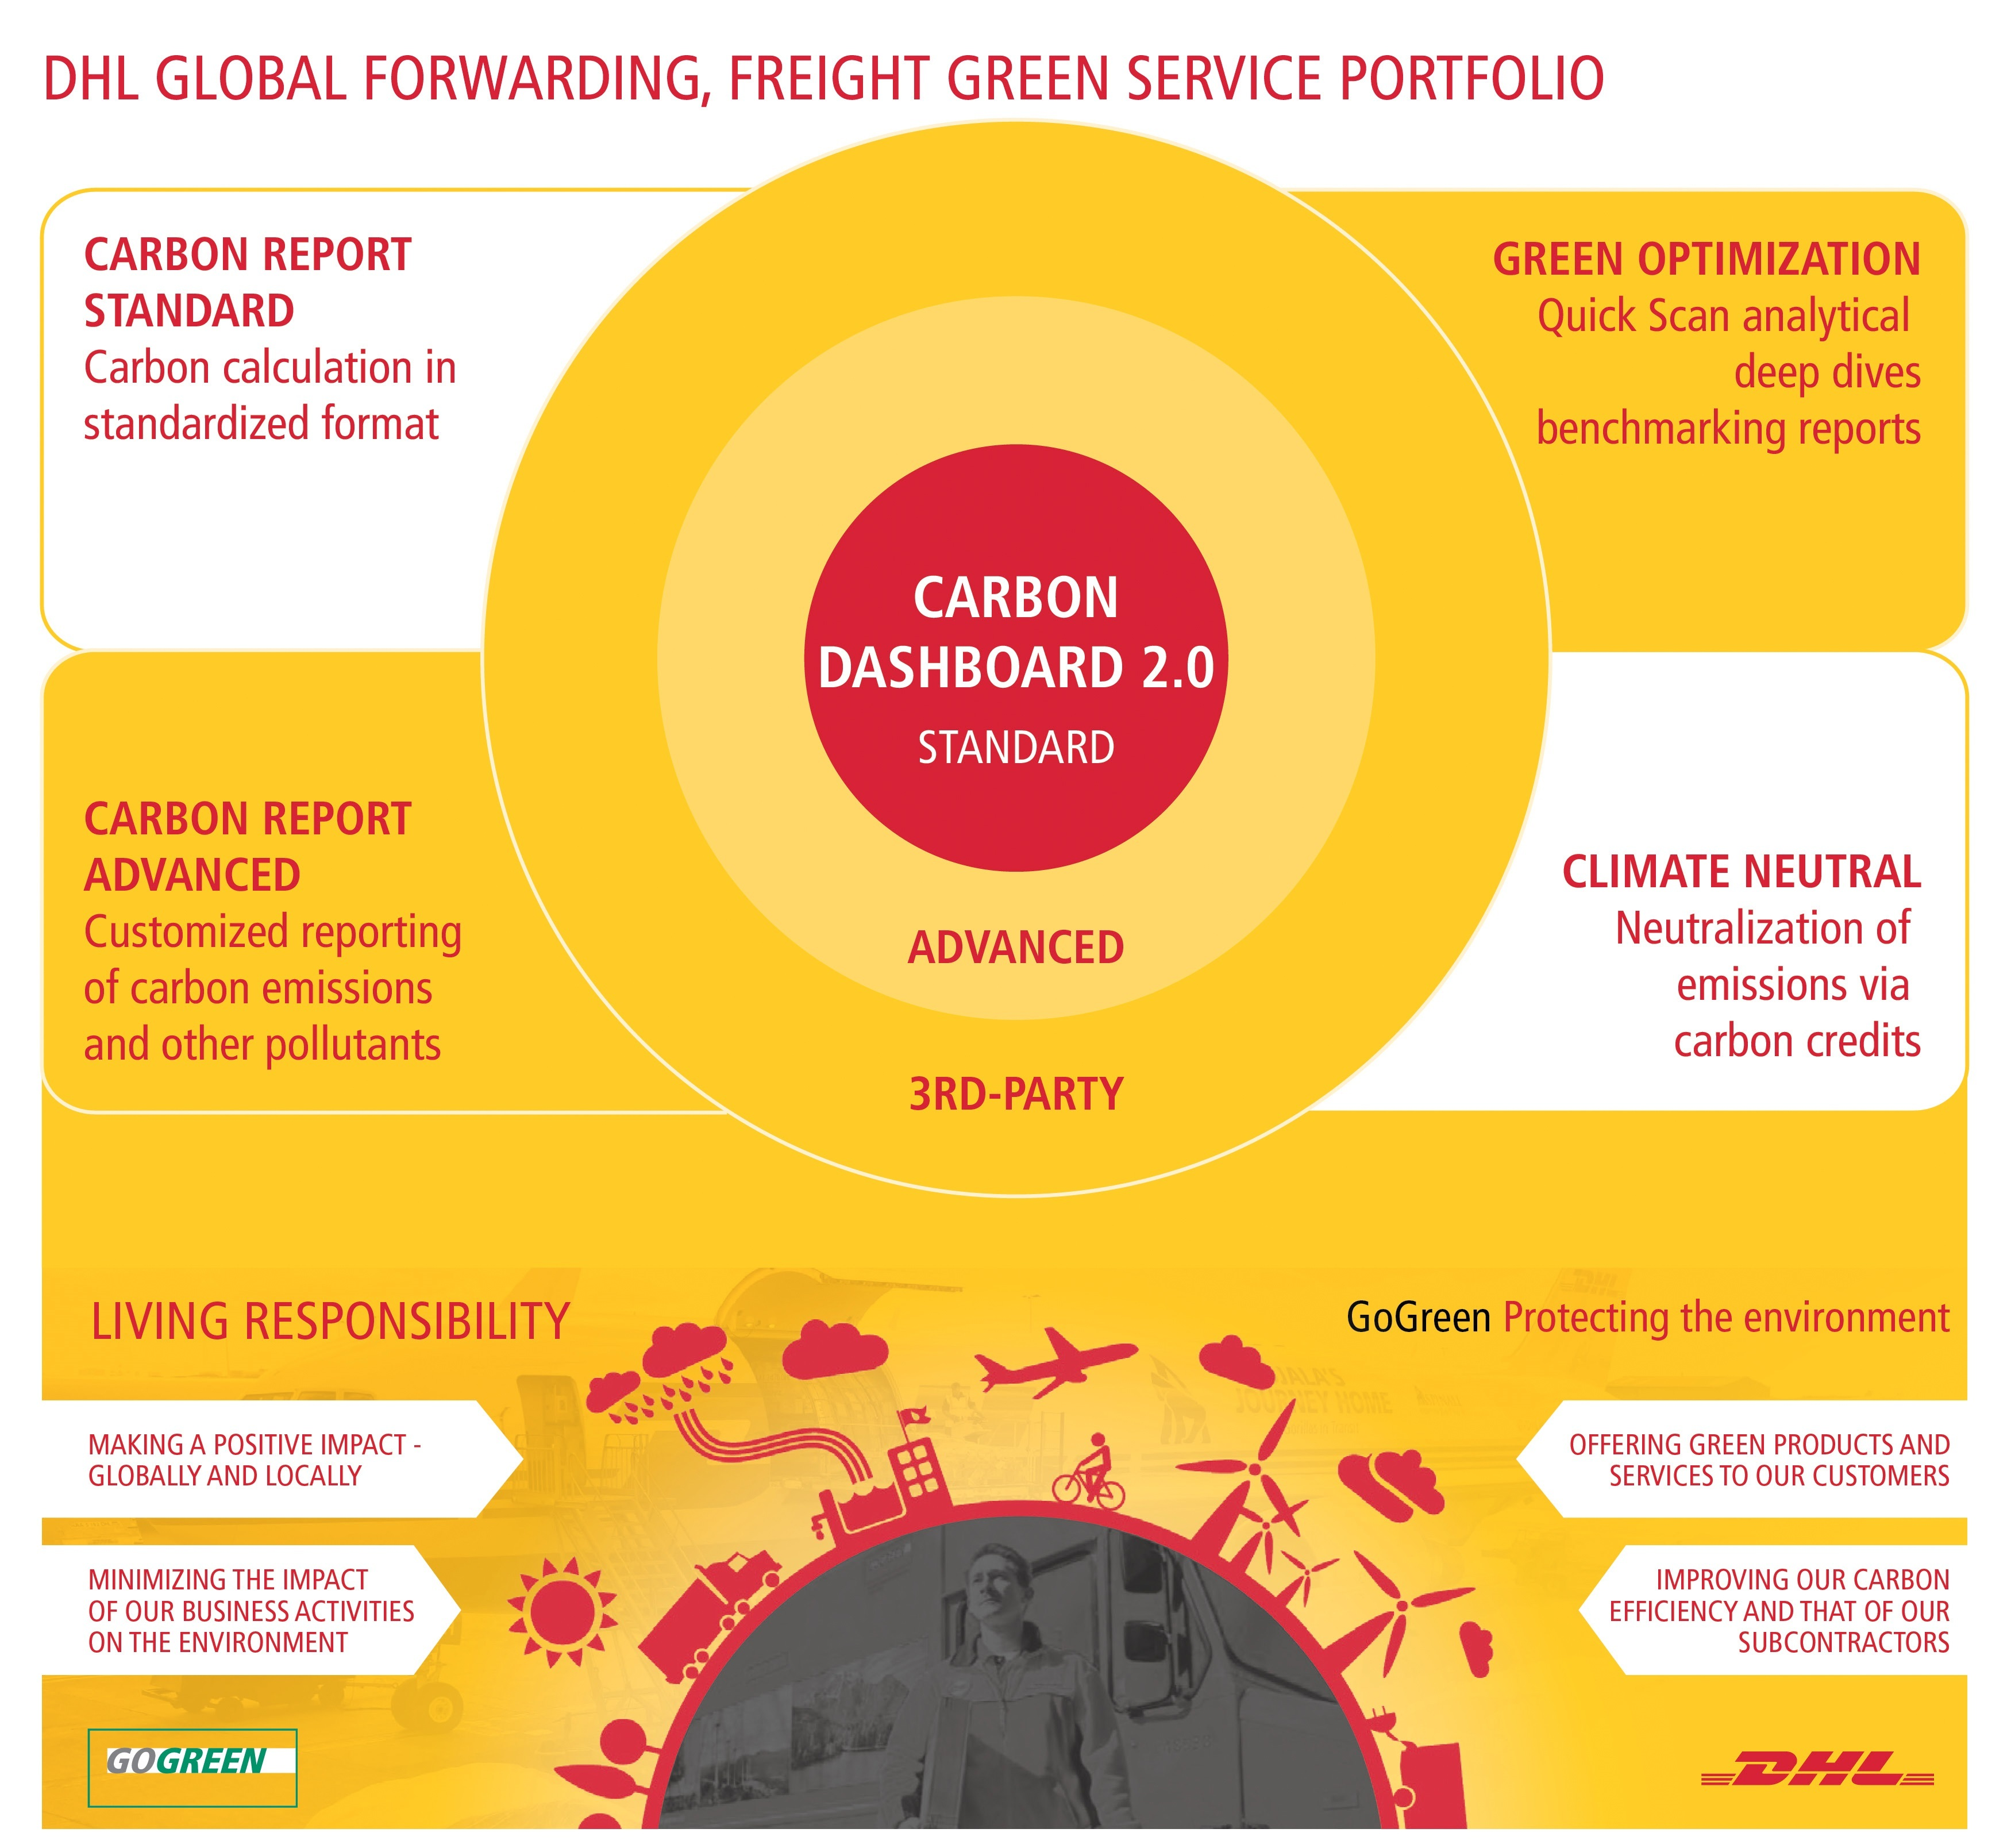 DHL Global Forwarding, Freight Green Service Portfolio (Graphic: Business Wire)